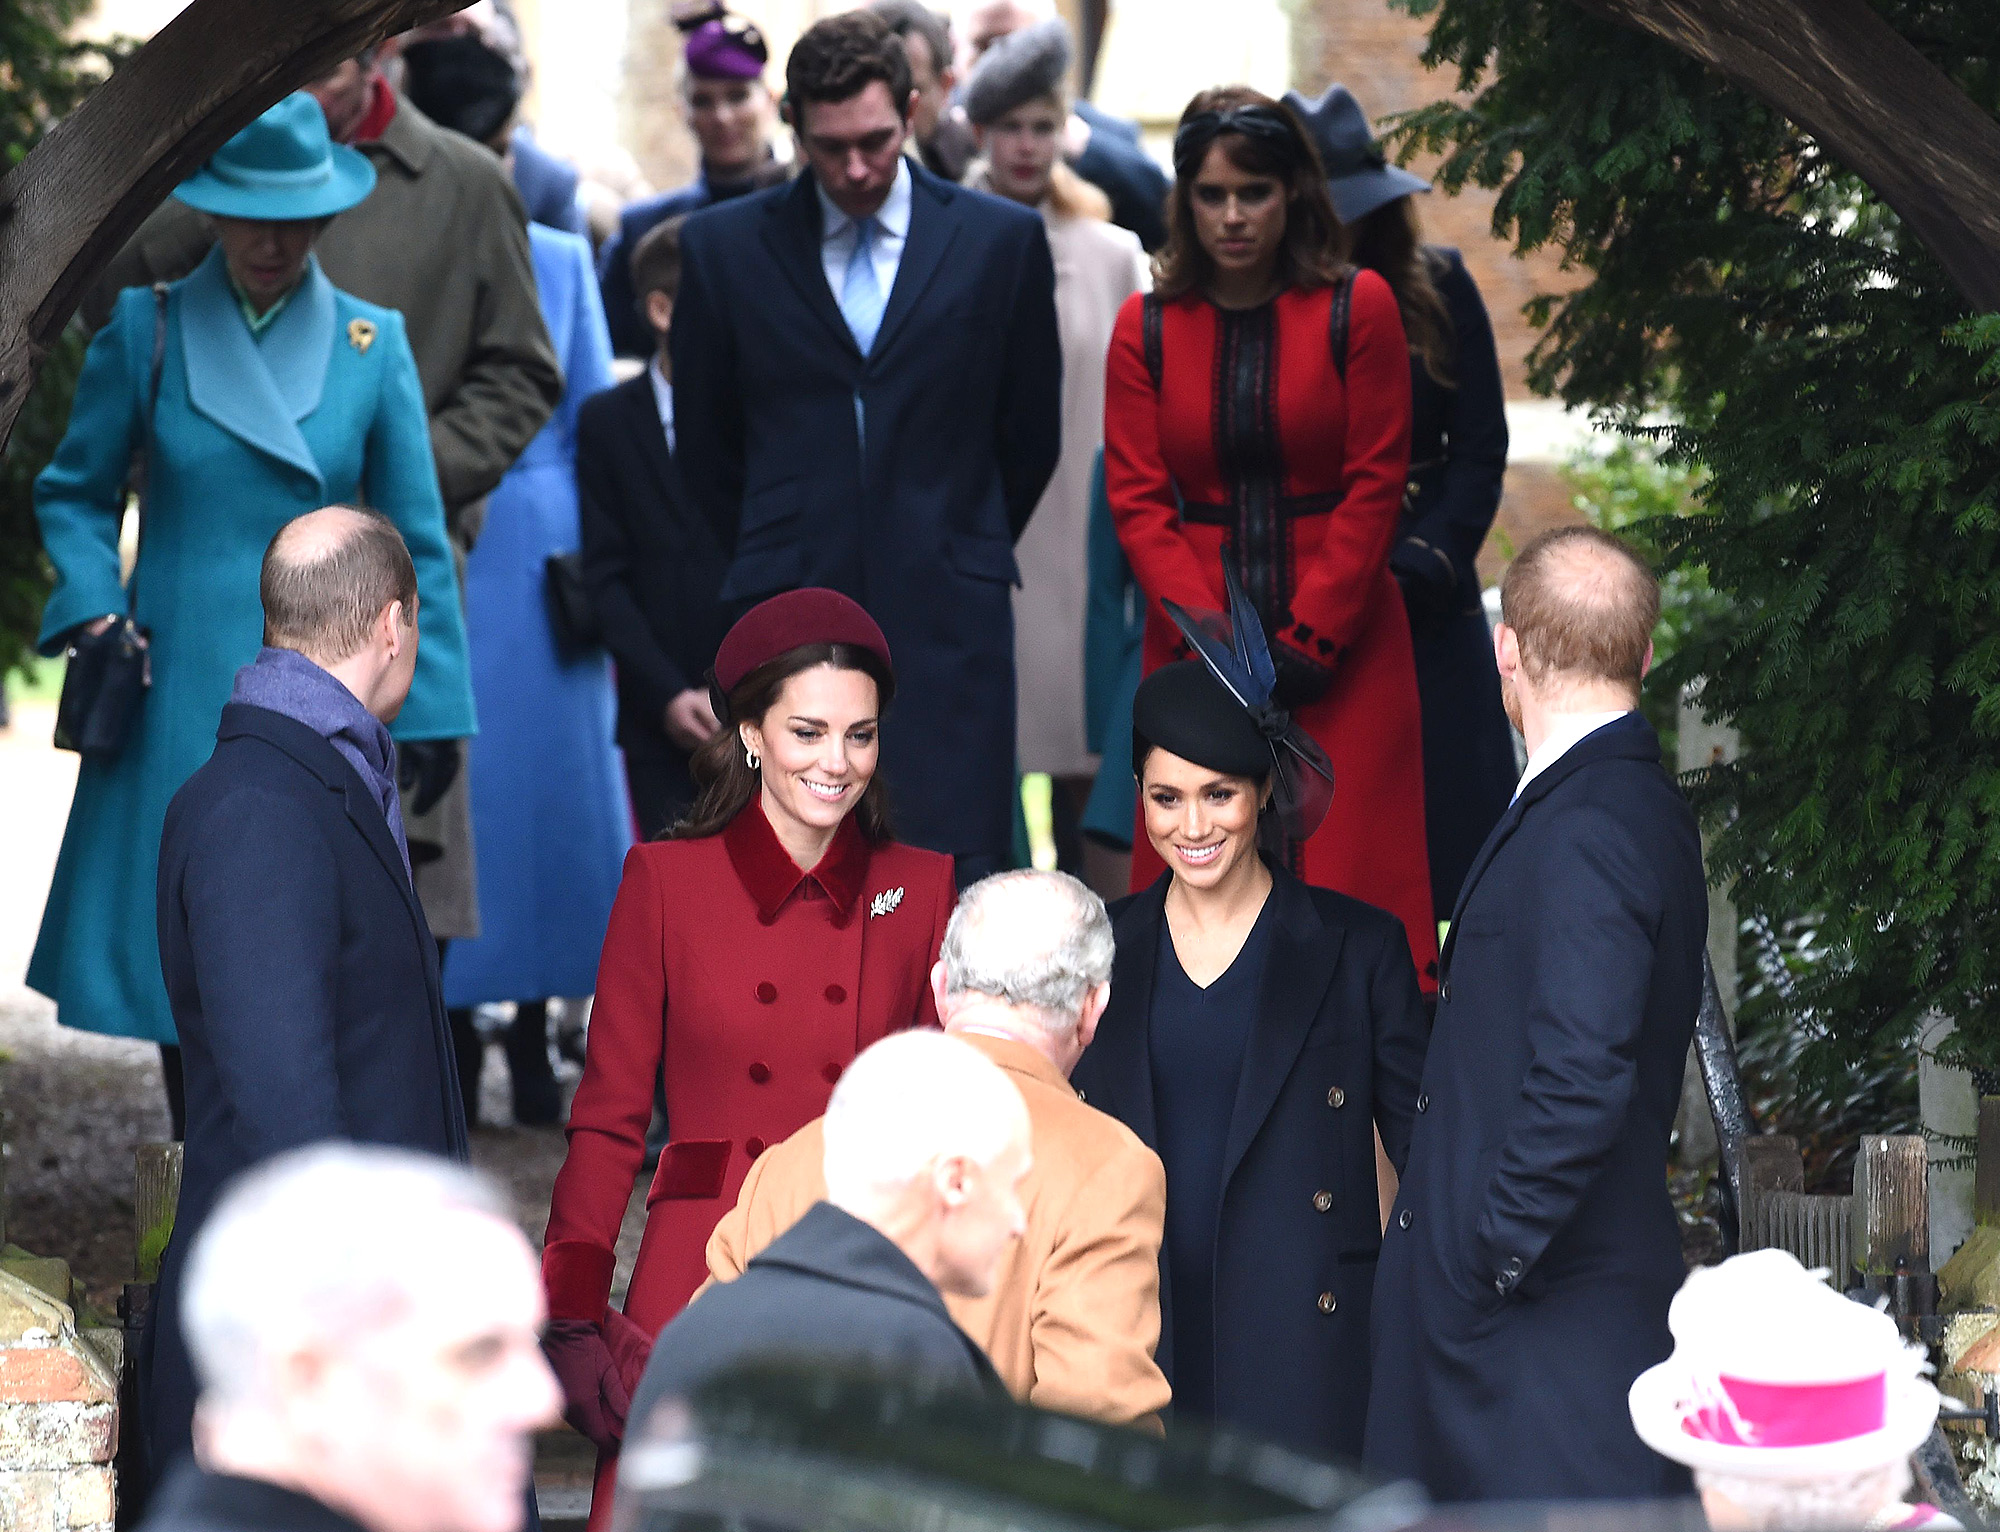 Kate, Duchess of Cambridge, and Meghan, Duchess of Sussex